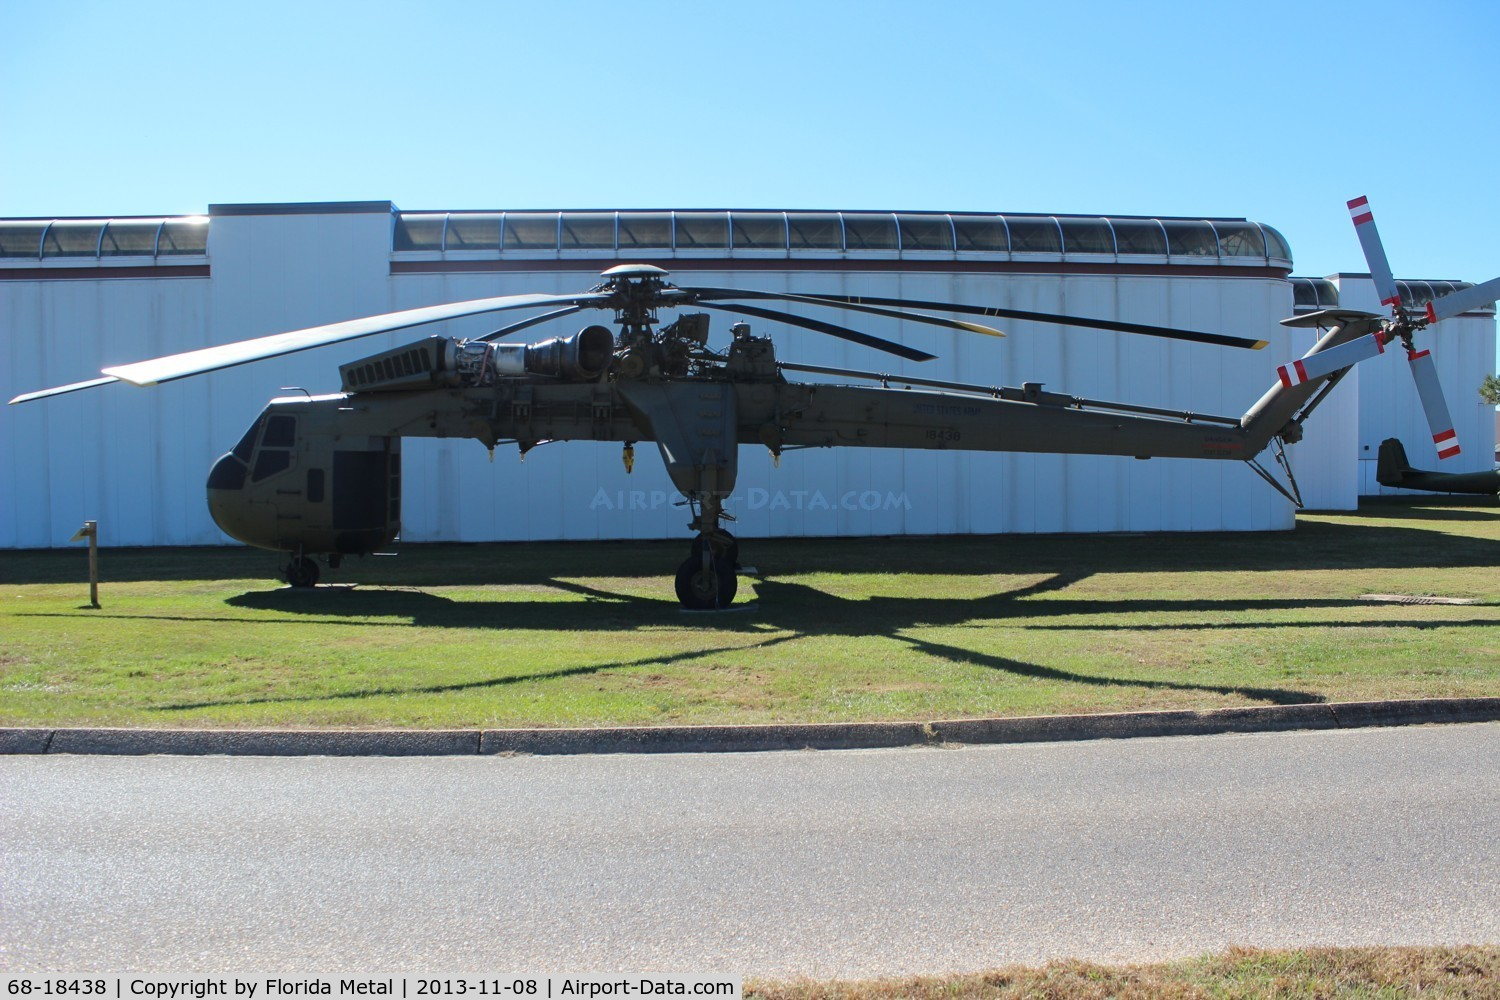 68-18438, 1968 Sikorsky CH-54A Tarhe C/N 64.040, CH-54 Tarhe at Army Aviation Museum